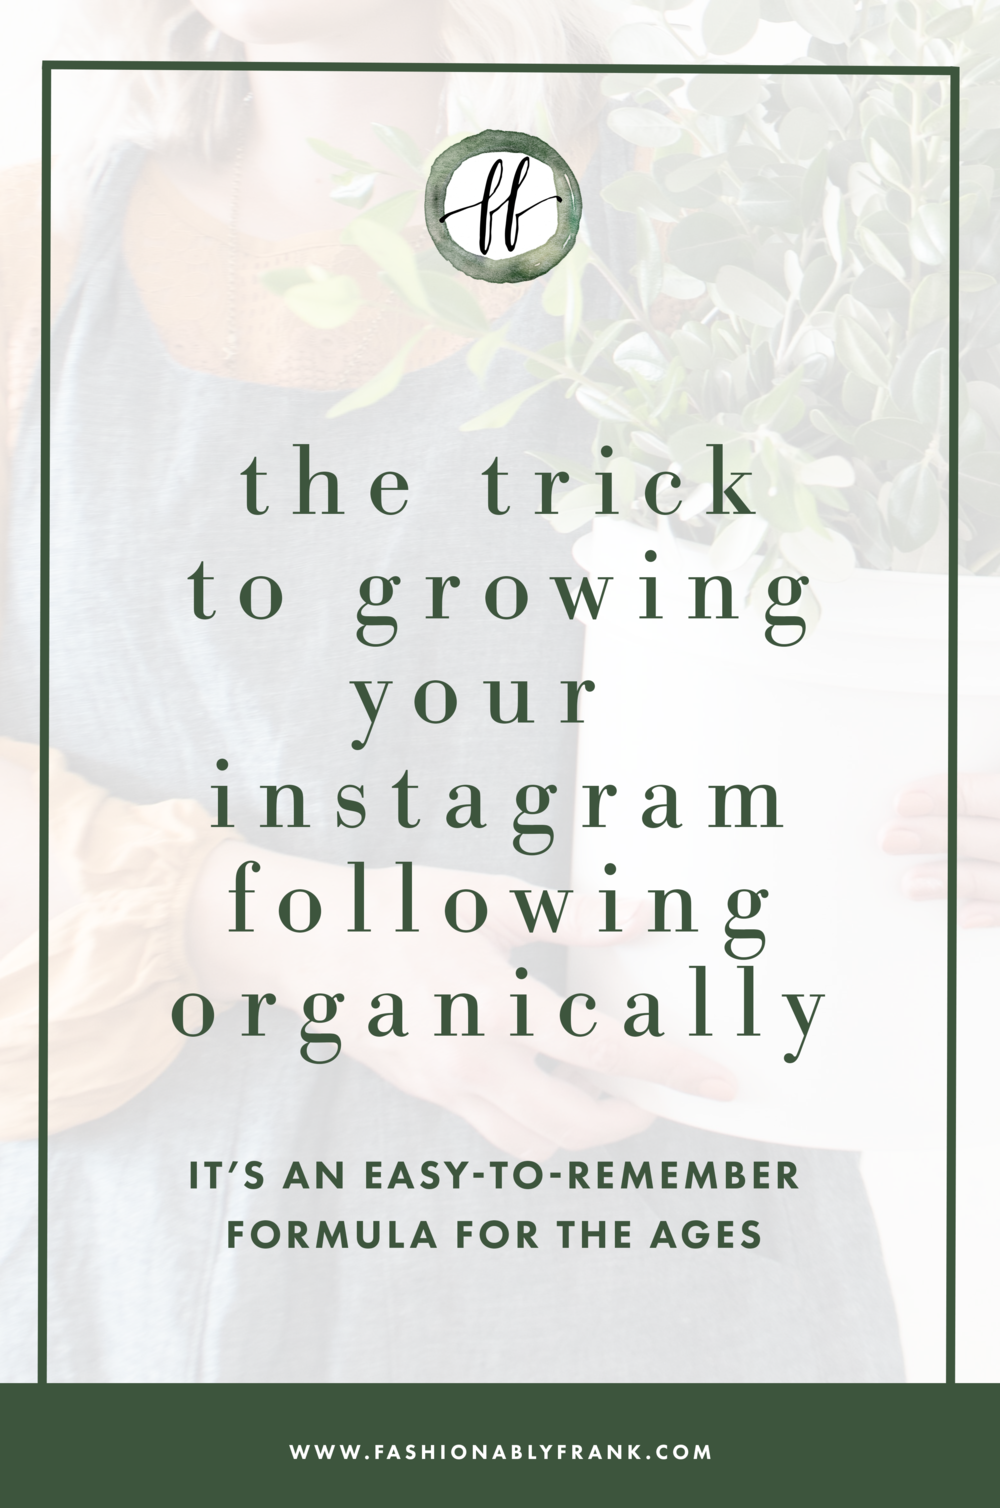 Growing Your Instagram Following Organically